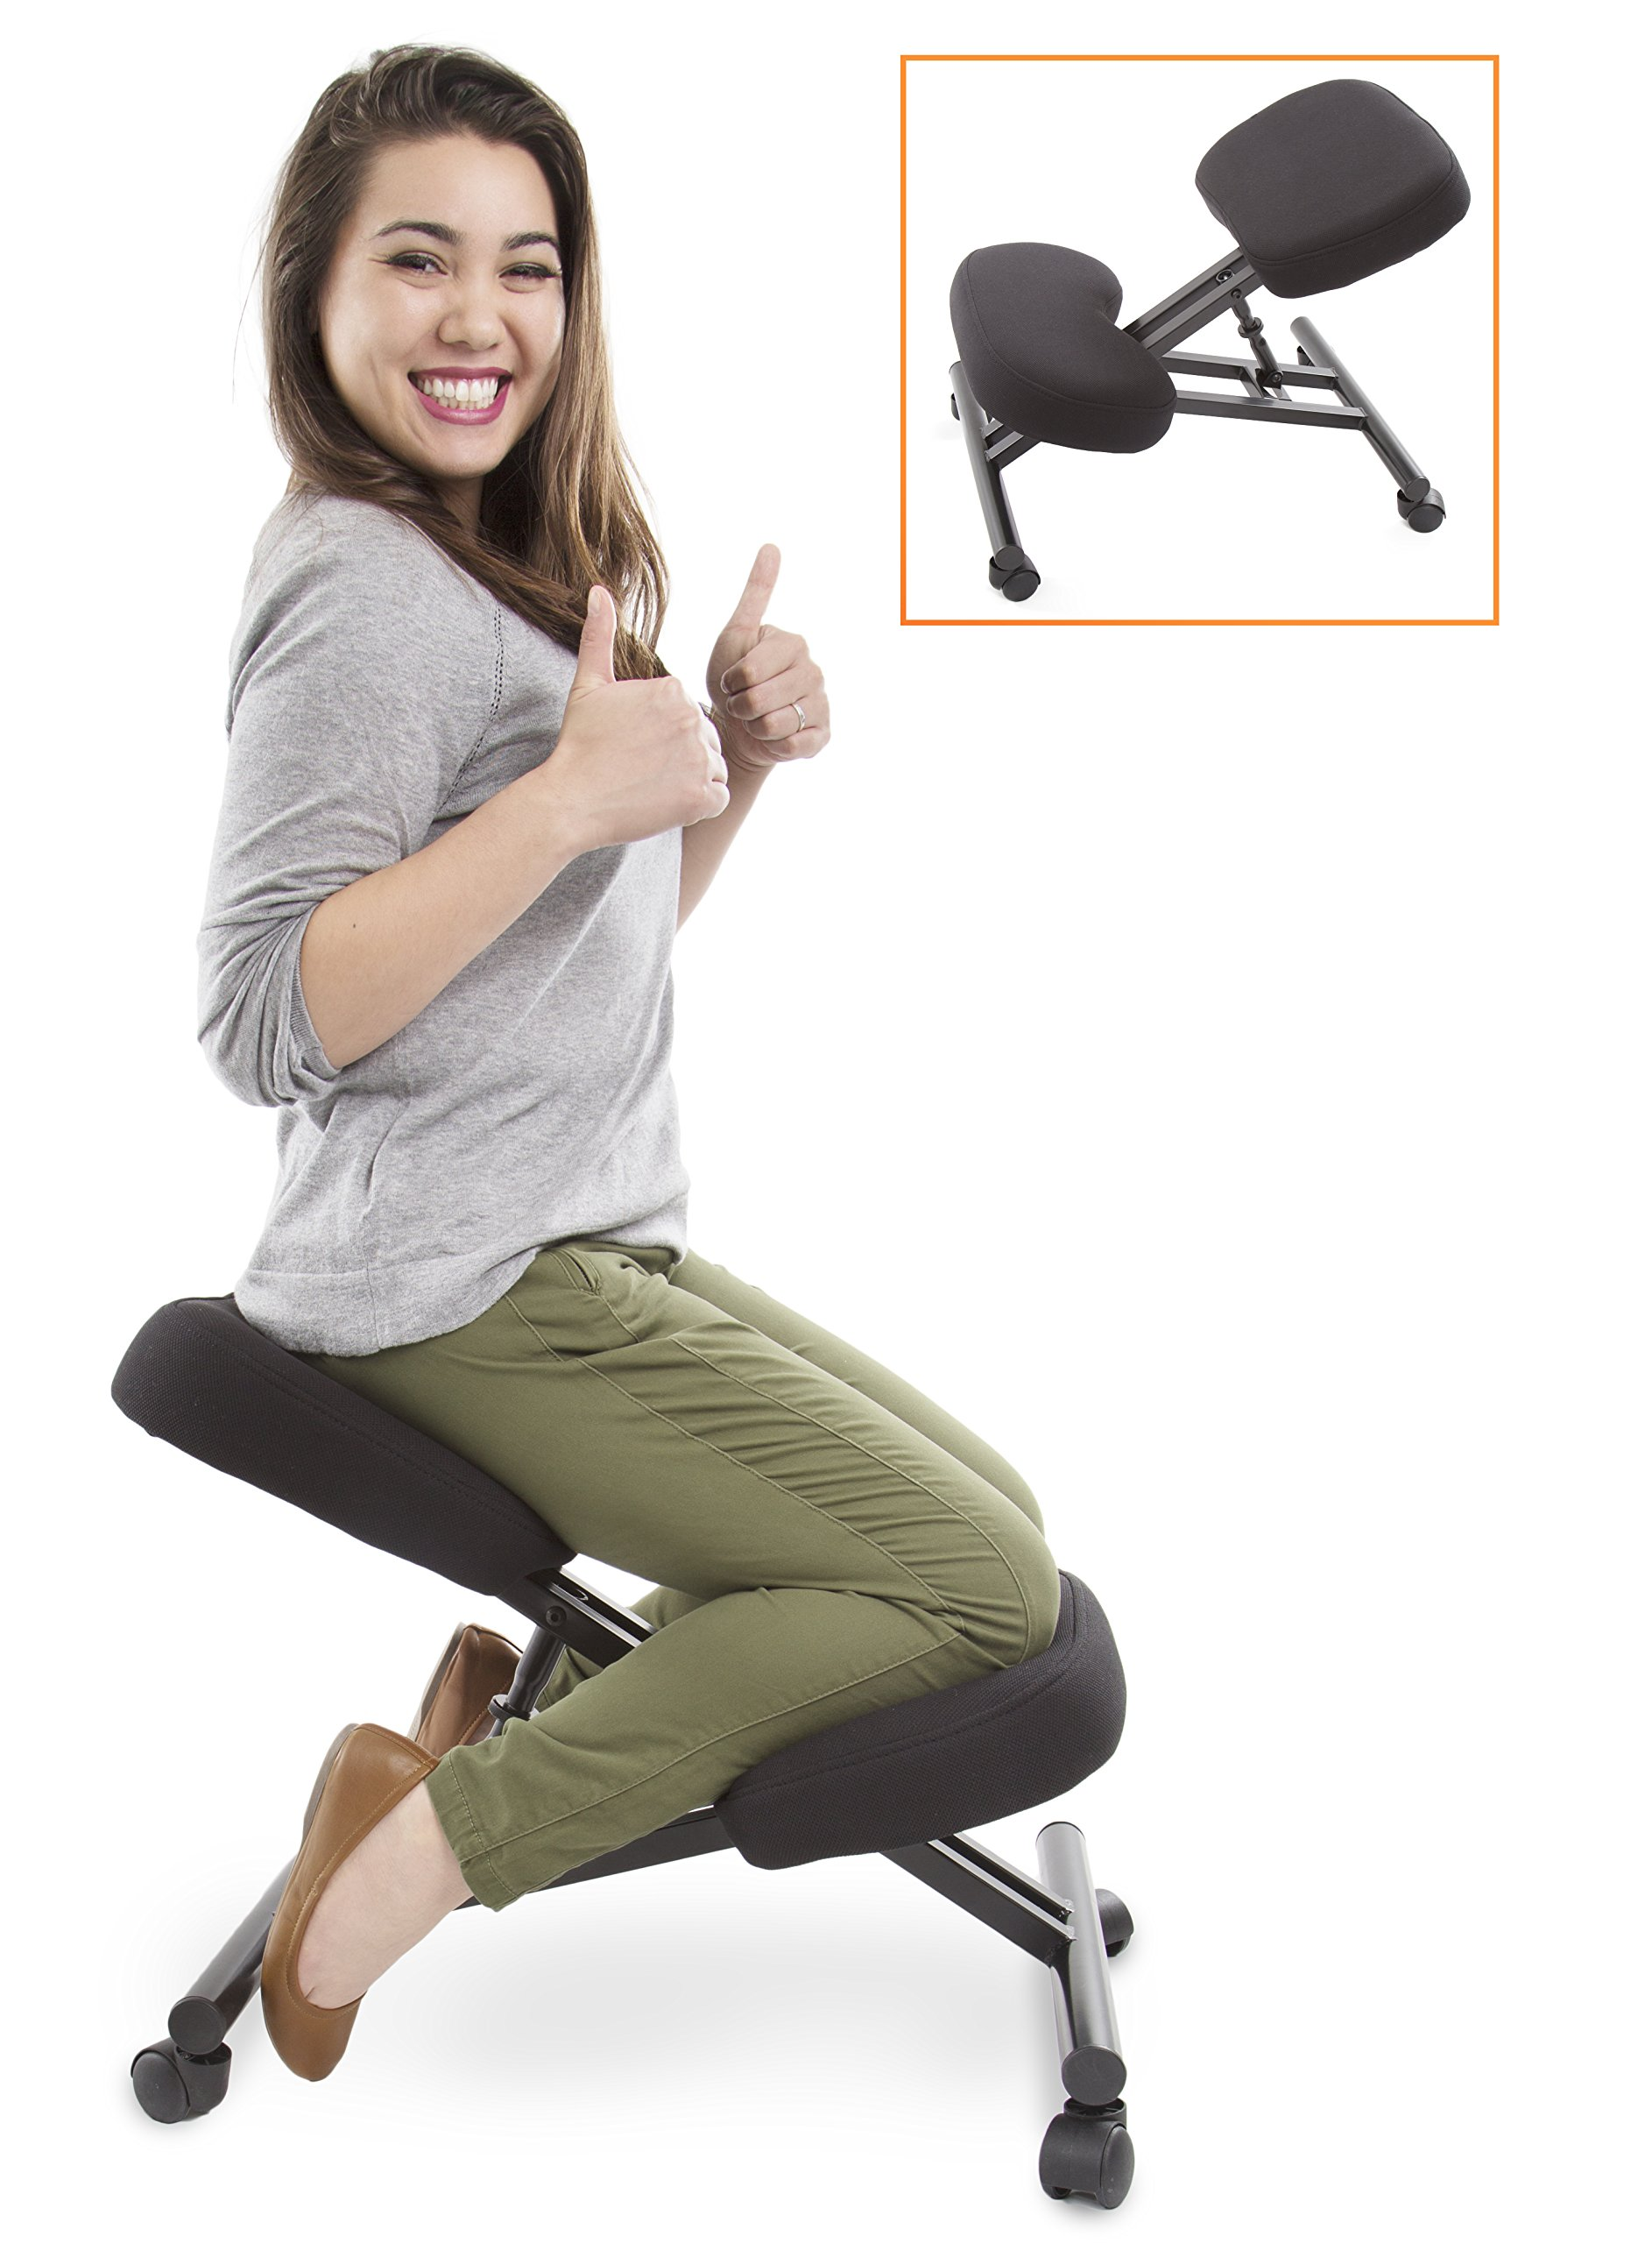 Stand Steady ProErgo Ergonomic Kneeling Chair -Adjustable Height - Office Seating an Edge! Perfect Relieving Back Neck Pain & Improving Posture - Great Fit Home, Office Classroom!